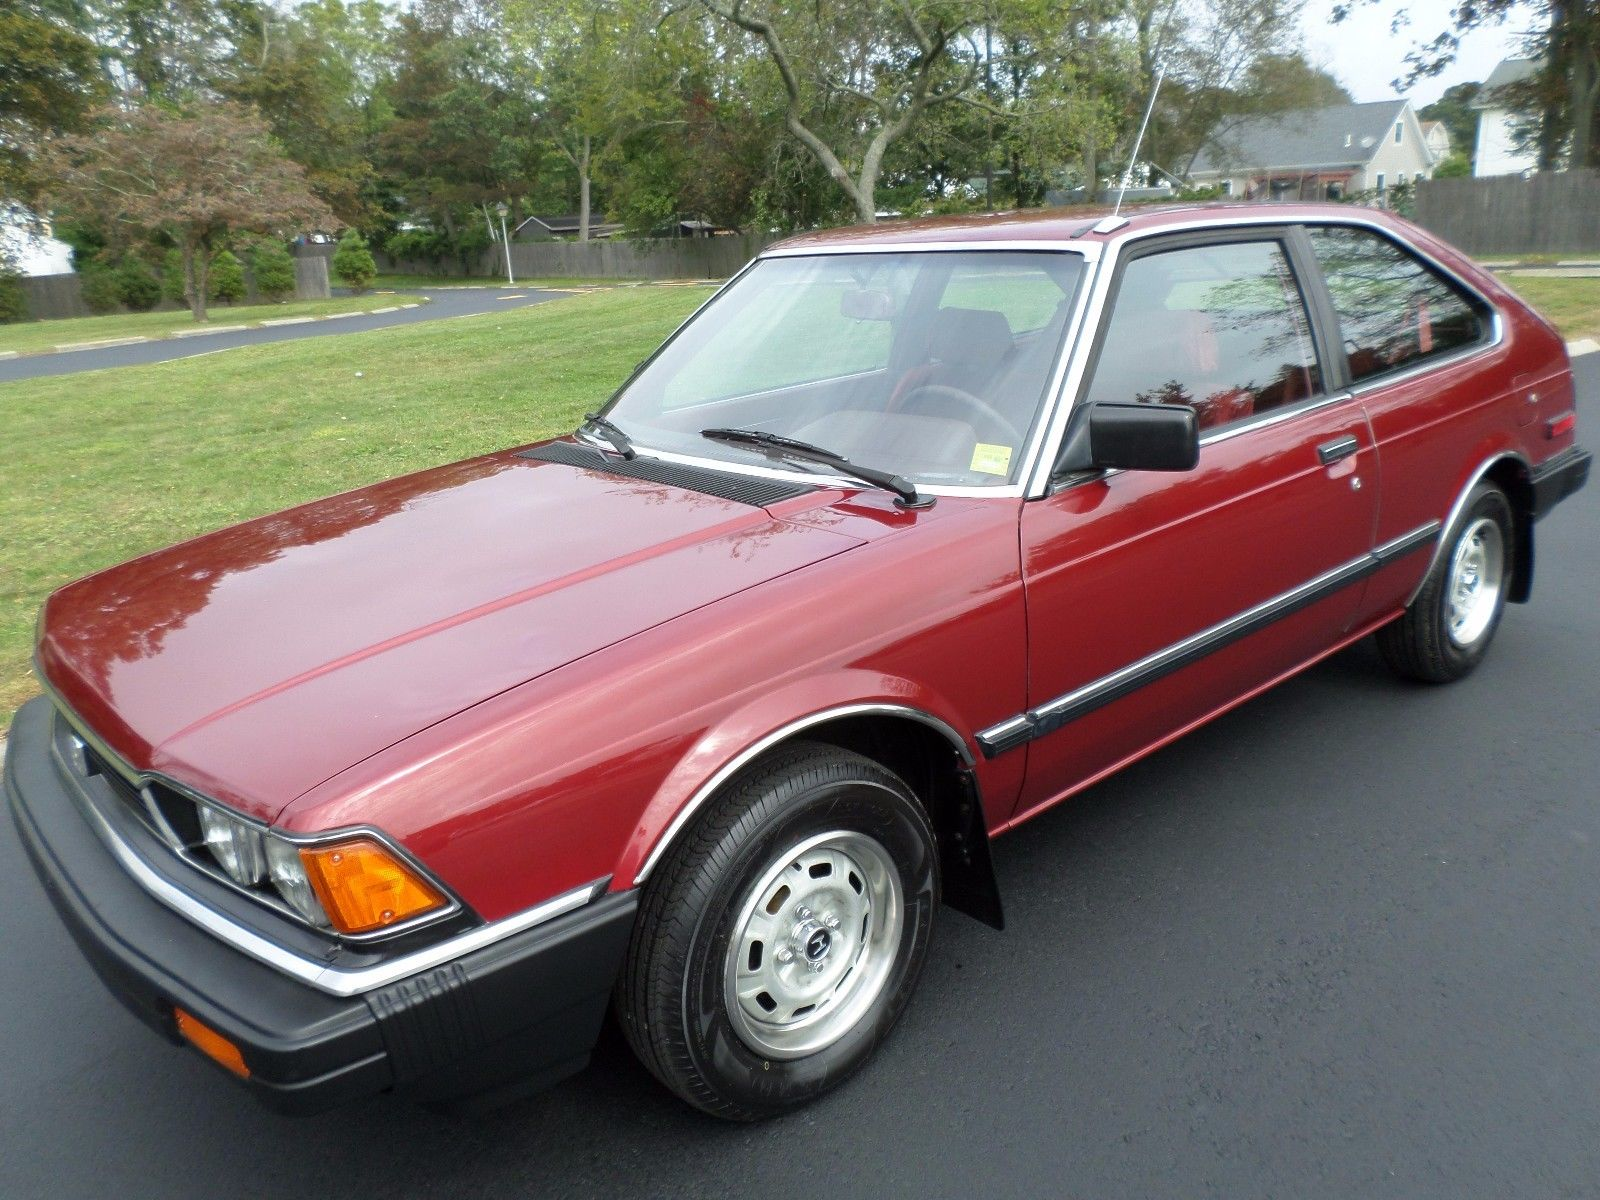 KIDNEY, ANYONE?: The Most Expensive 1983 Honda Accord Yet?